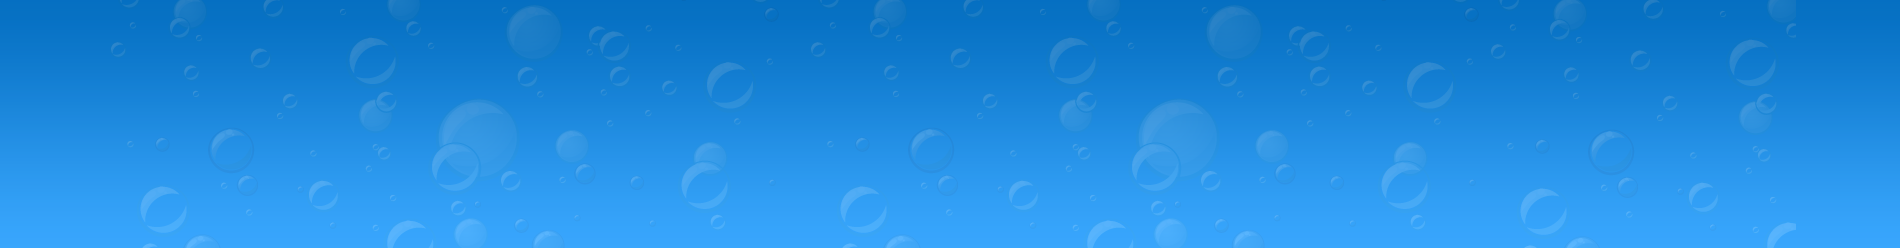 Blue Vertical Image with bubble background